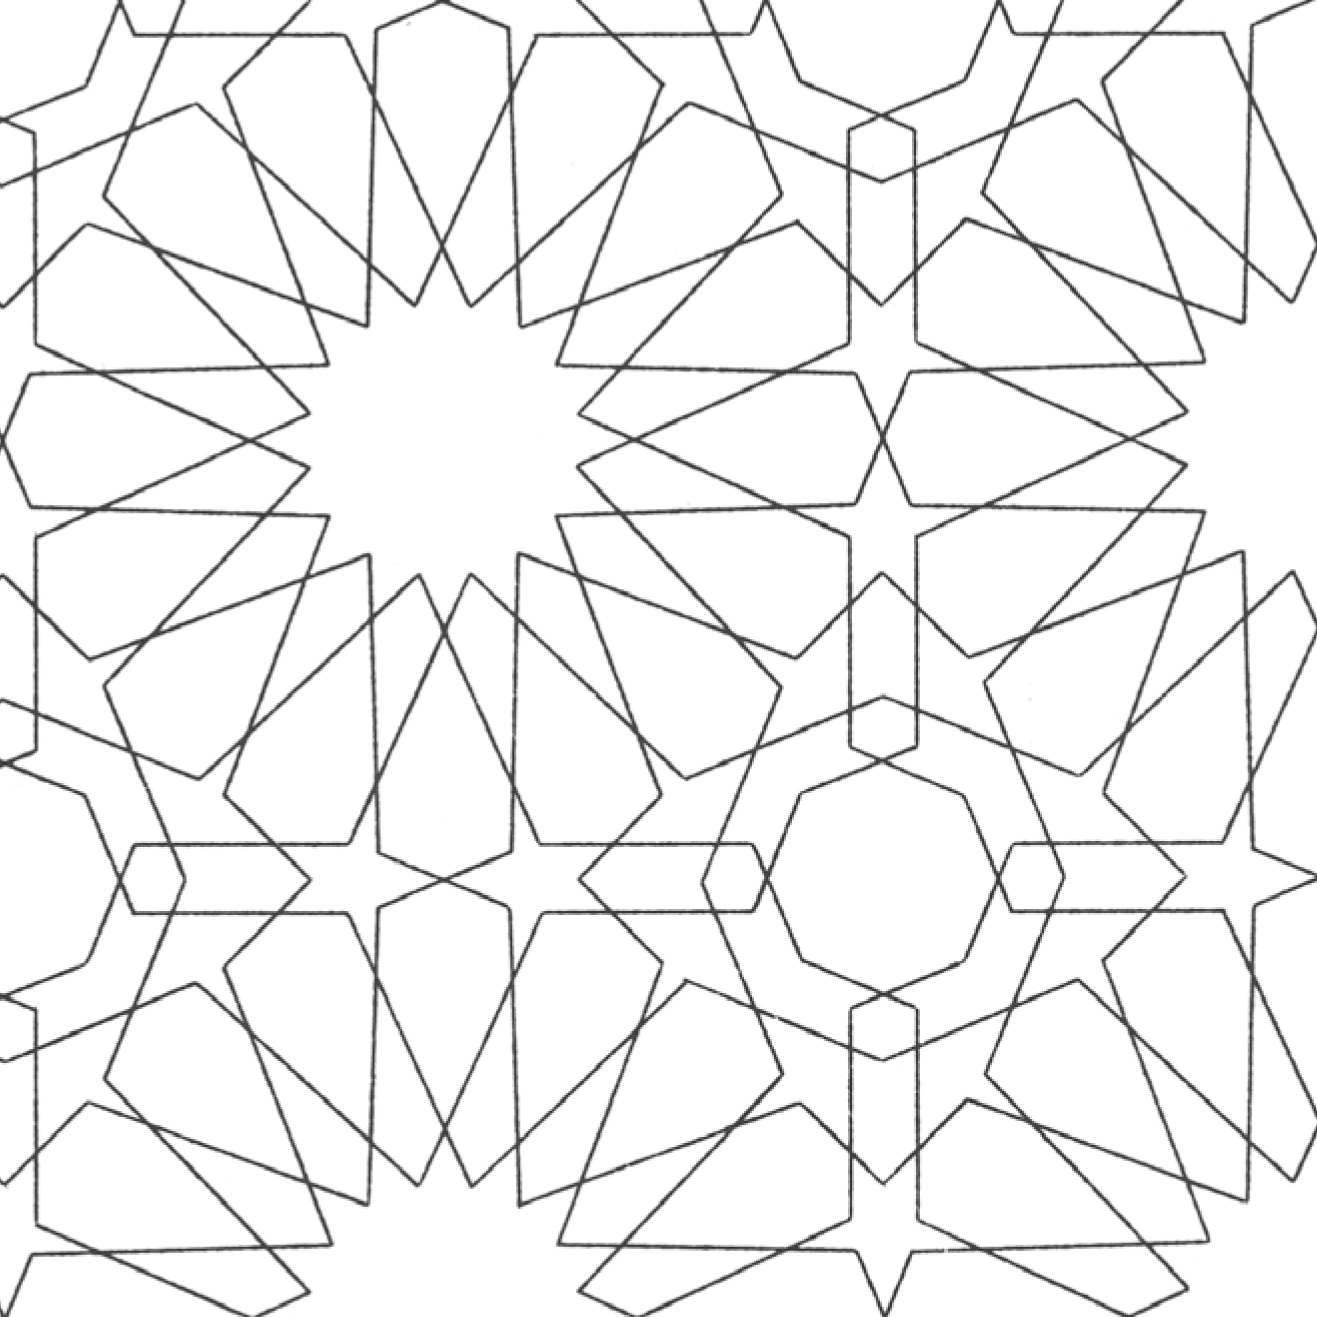 arabicpatterns Colouring Pages | islamic geometric | Pinterest ...